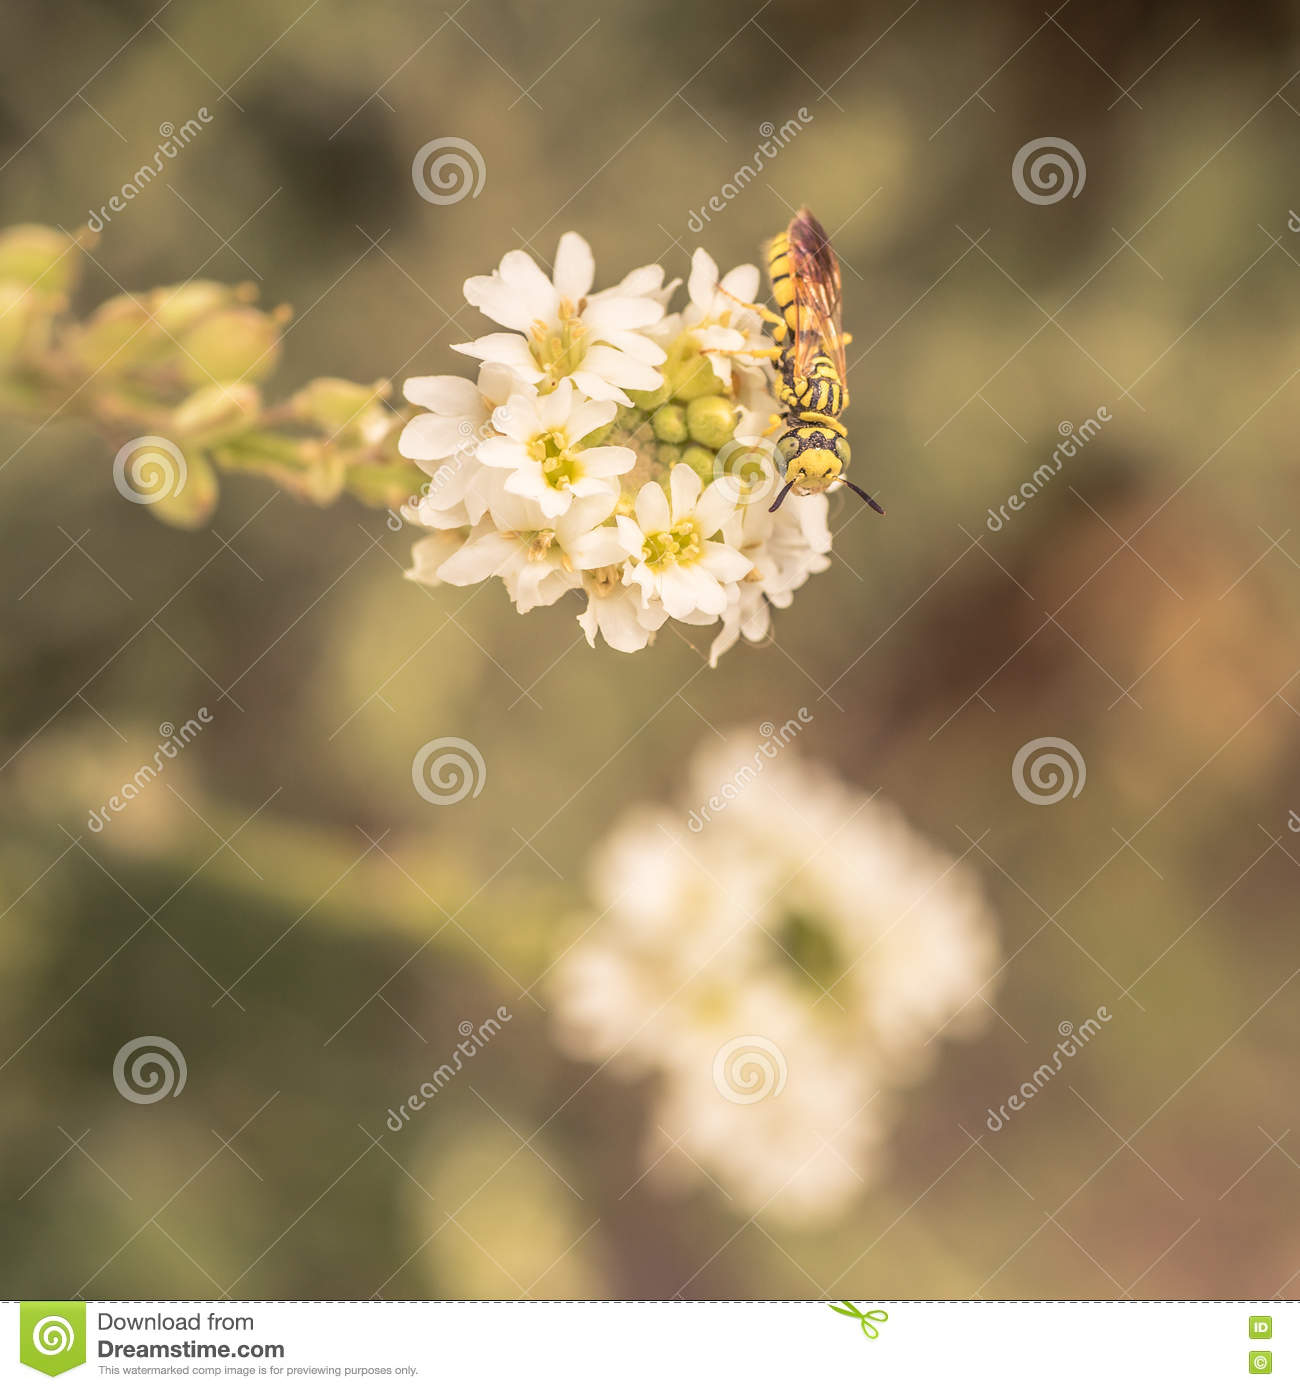 Sand Wasp Sitting on a White Flower